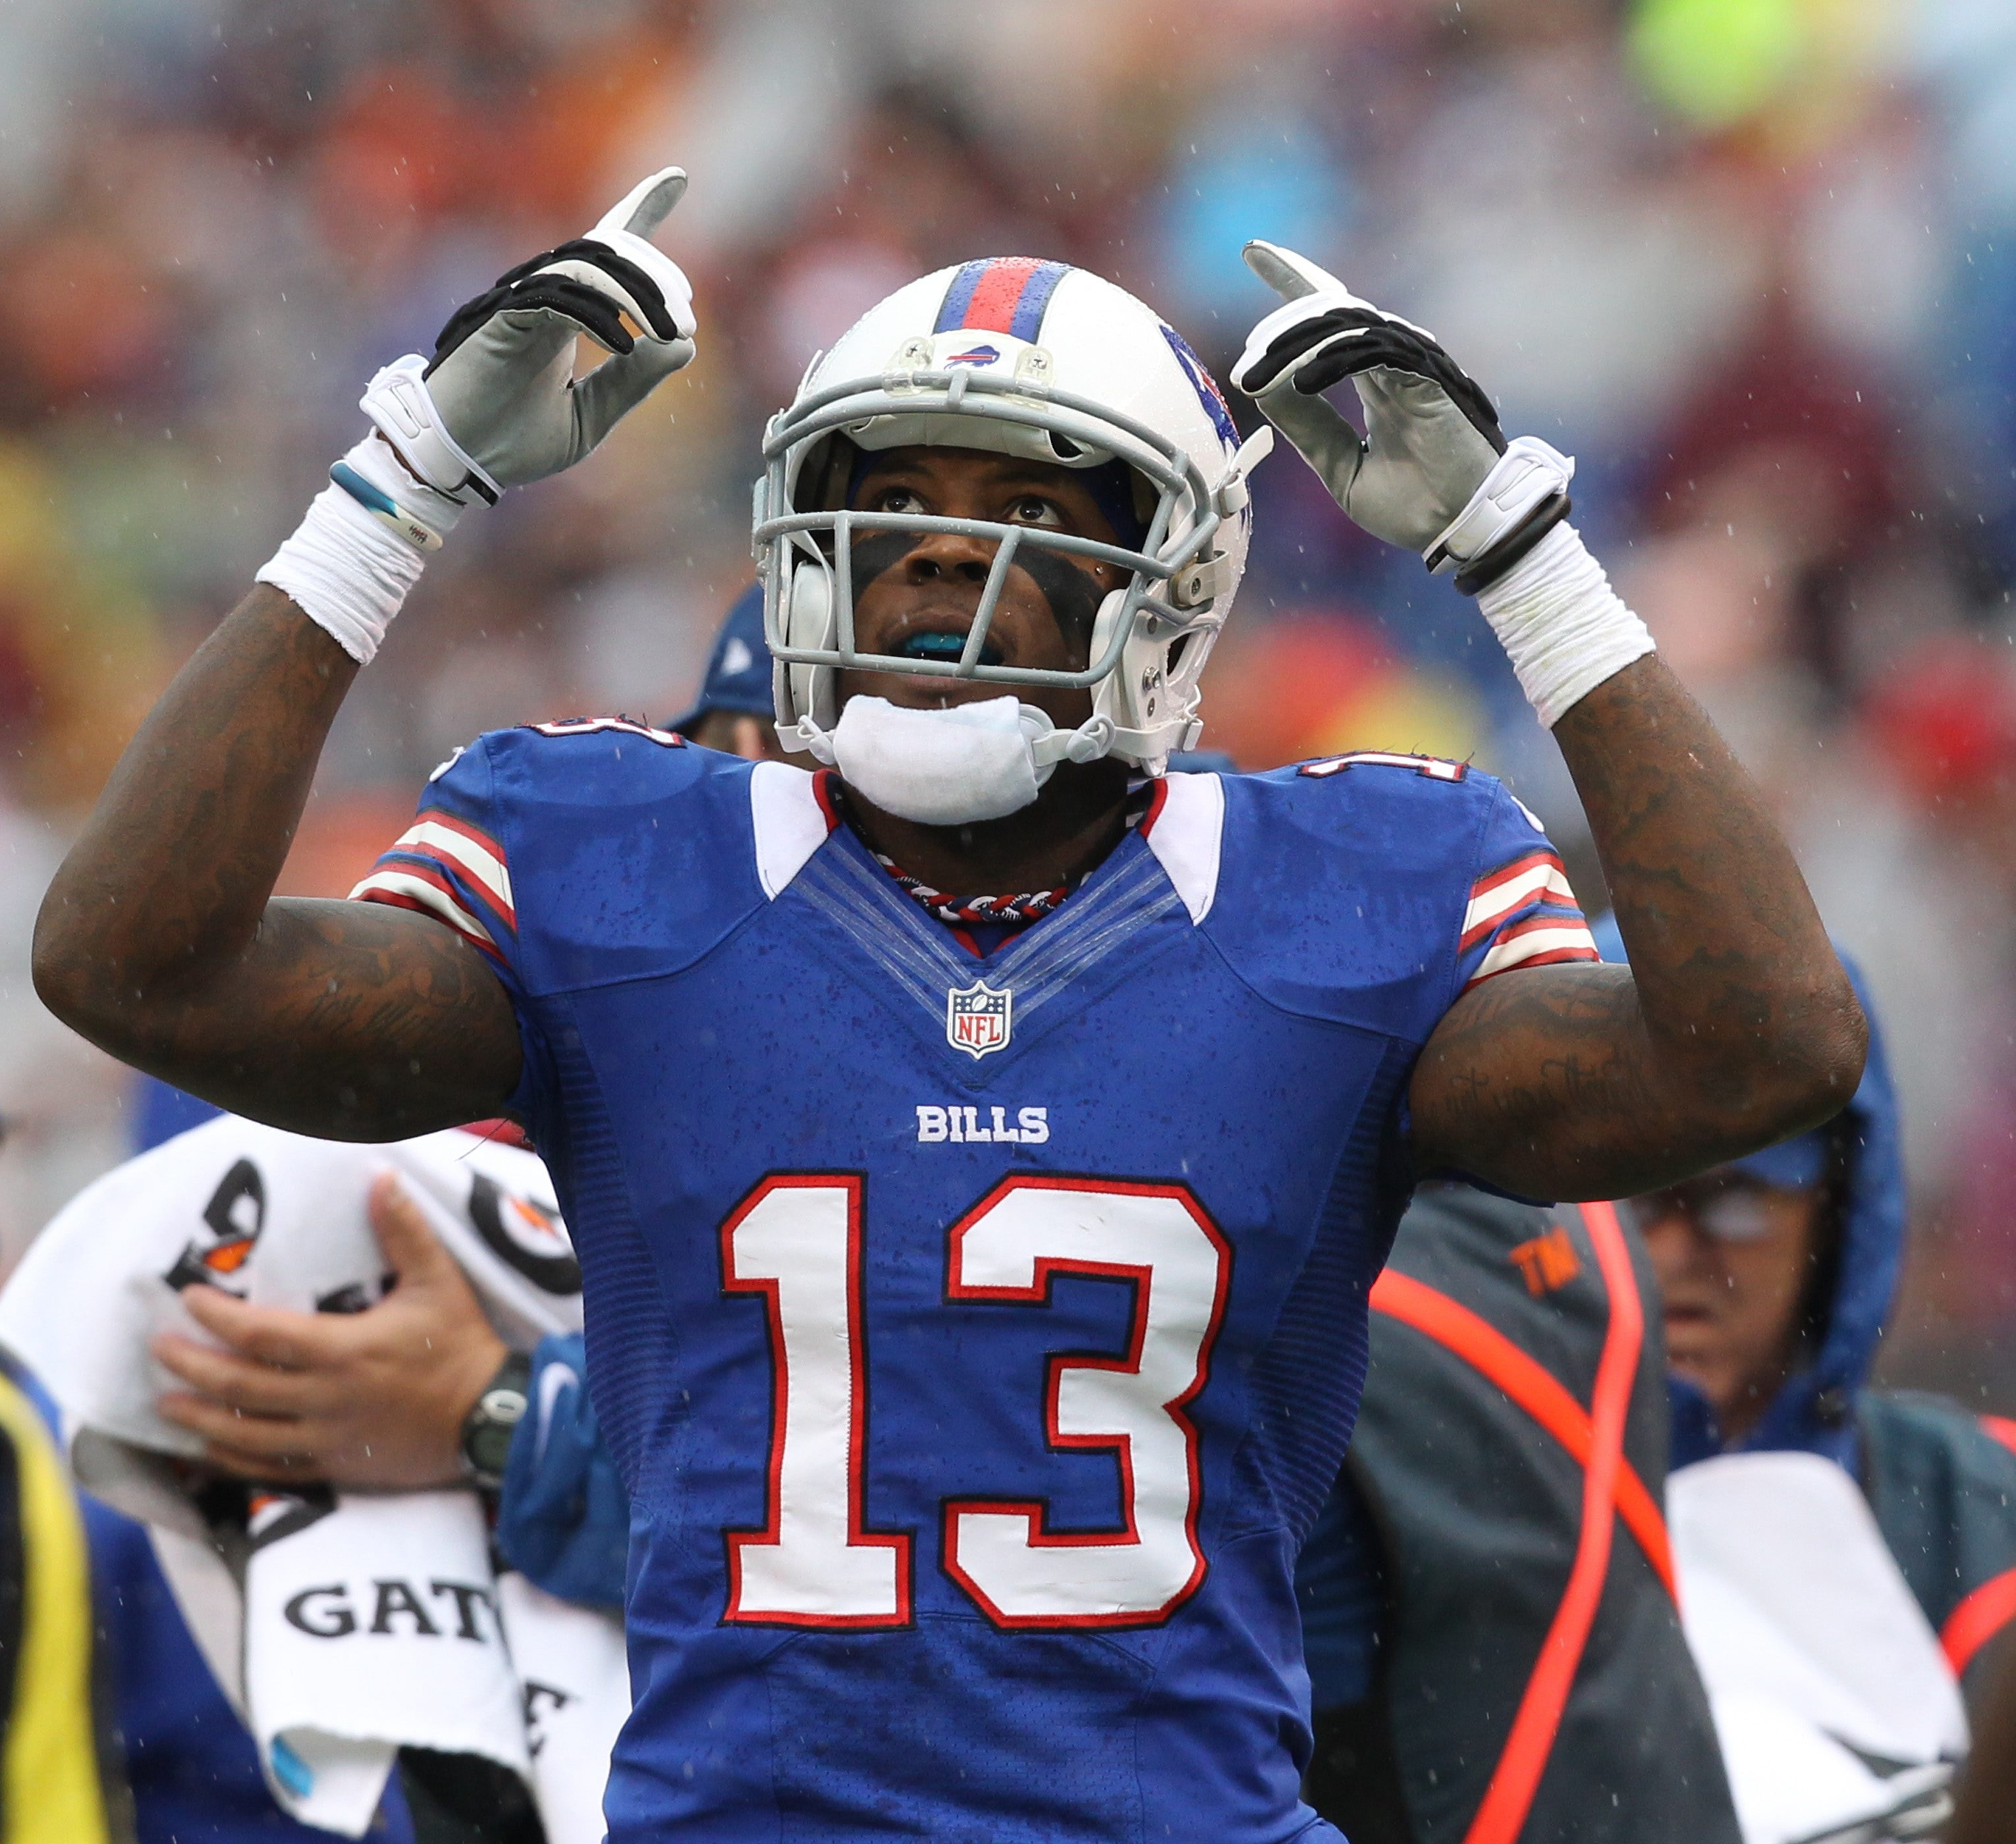 James P. McCoy / Buffalo News    Bills wide receiver Stevie Johnson has three touchdown catches in the first three games.